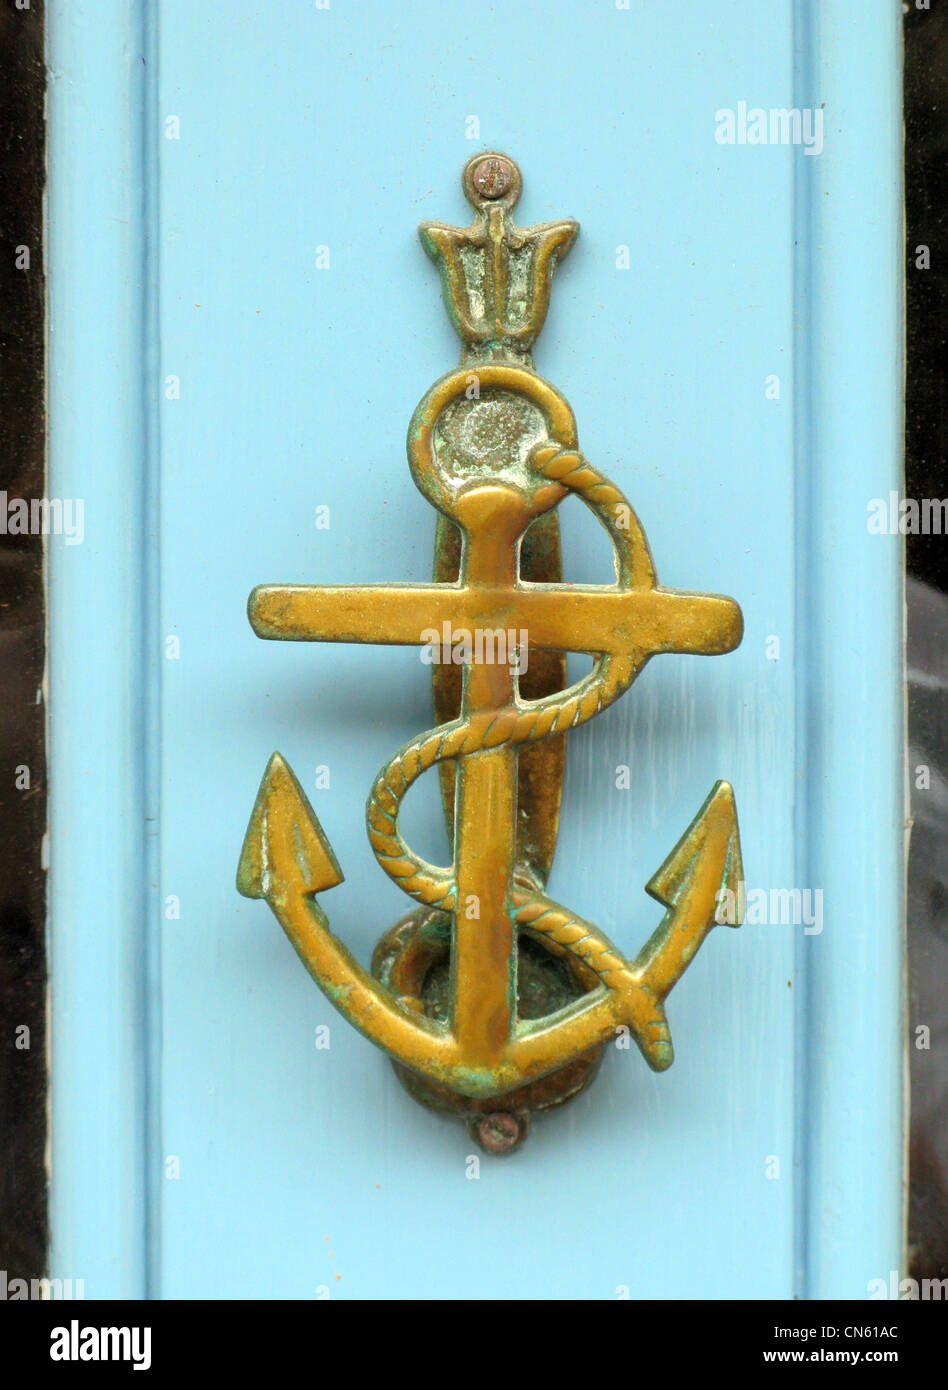 Brass Door Knocker In The Shape Of A Shipu0027s Anchor   Stock Image